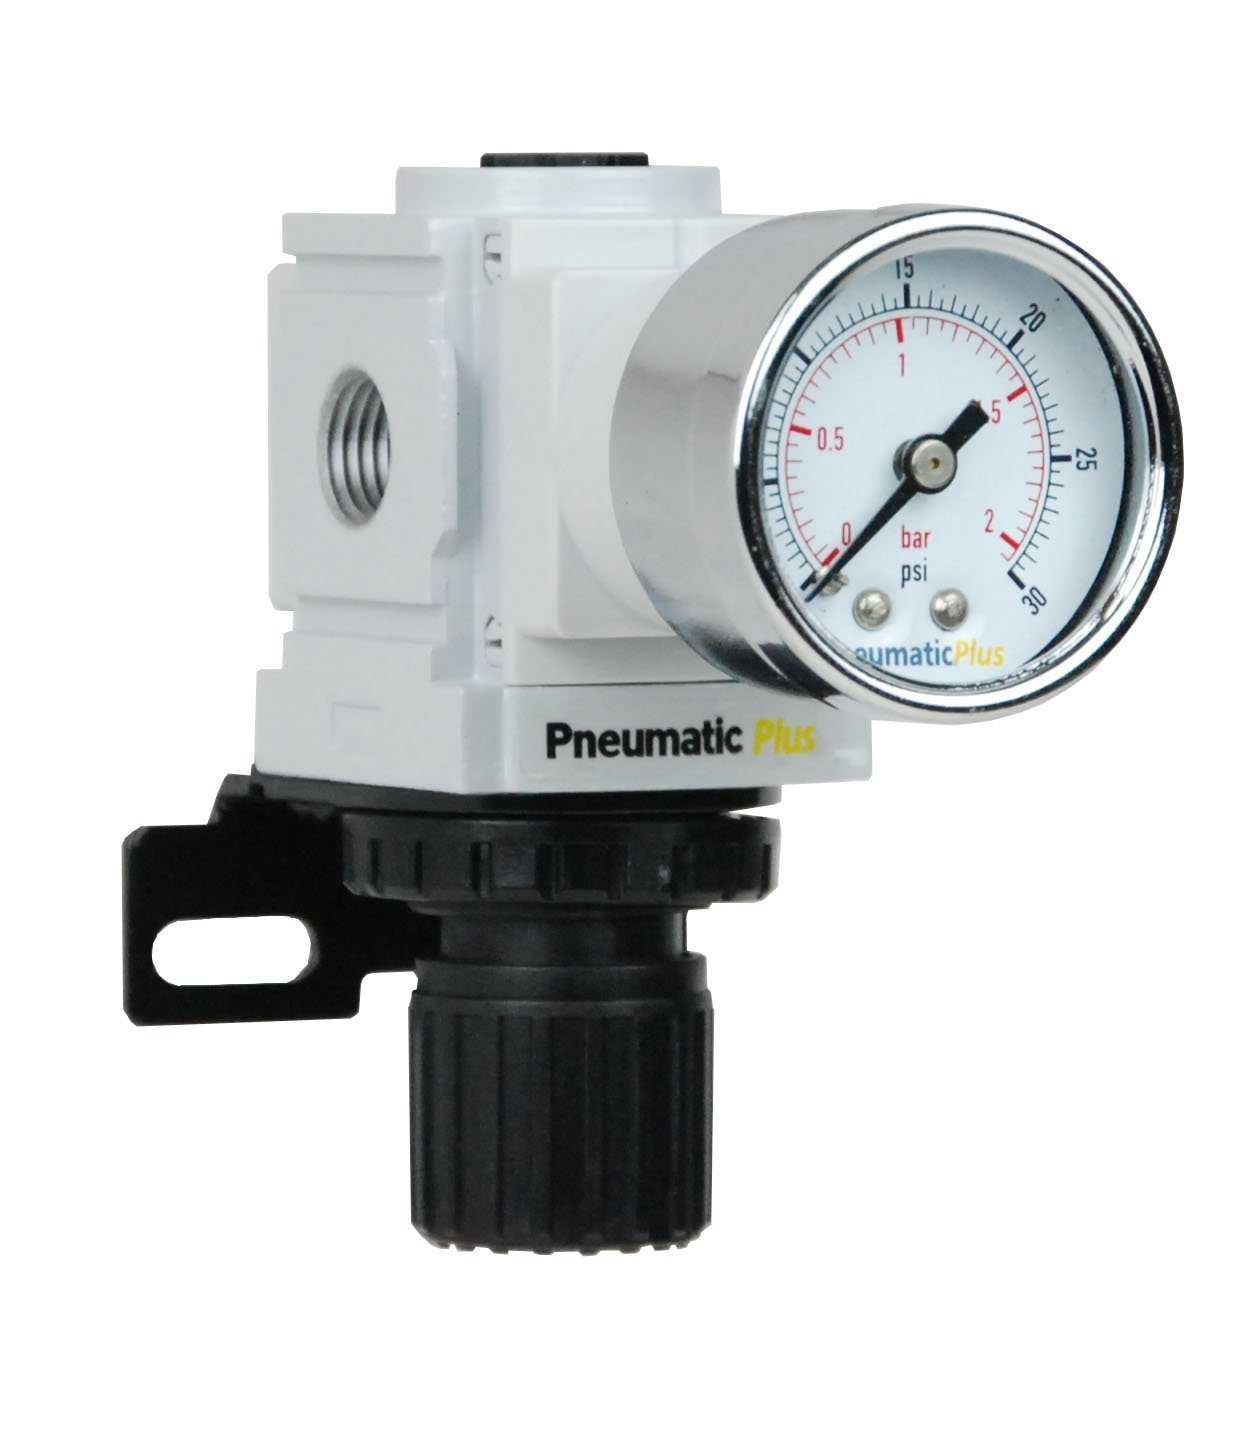 PneumaticPlus PPR2-N02BG-2 Compressed Air Regulator, Instrument Pressure 0-30 PSI, 1/4' NPT, Gauge & Bracket